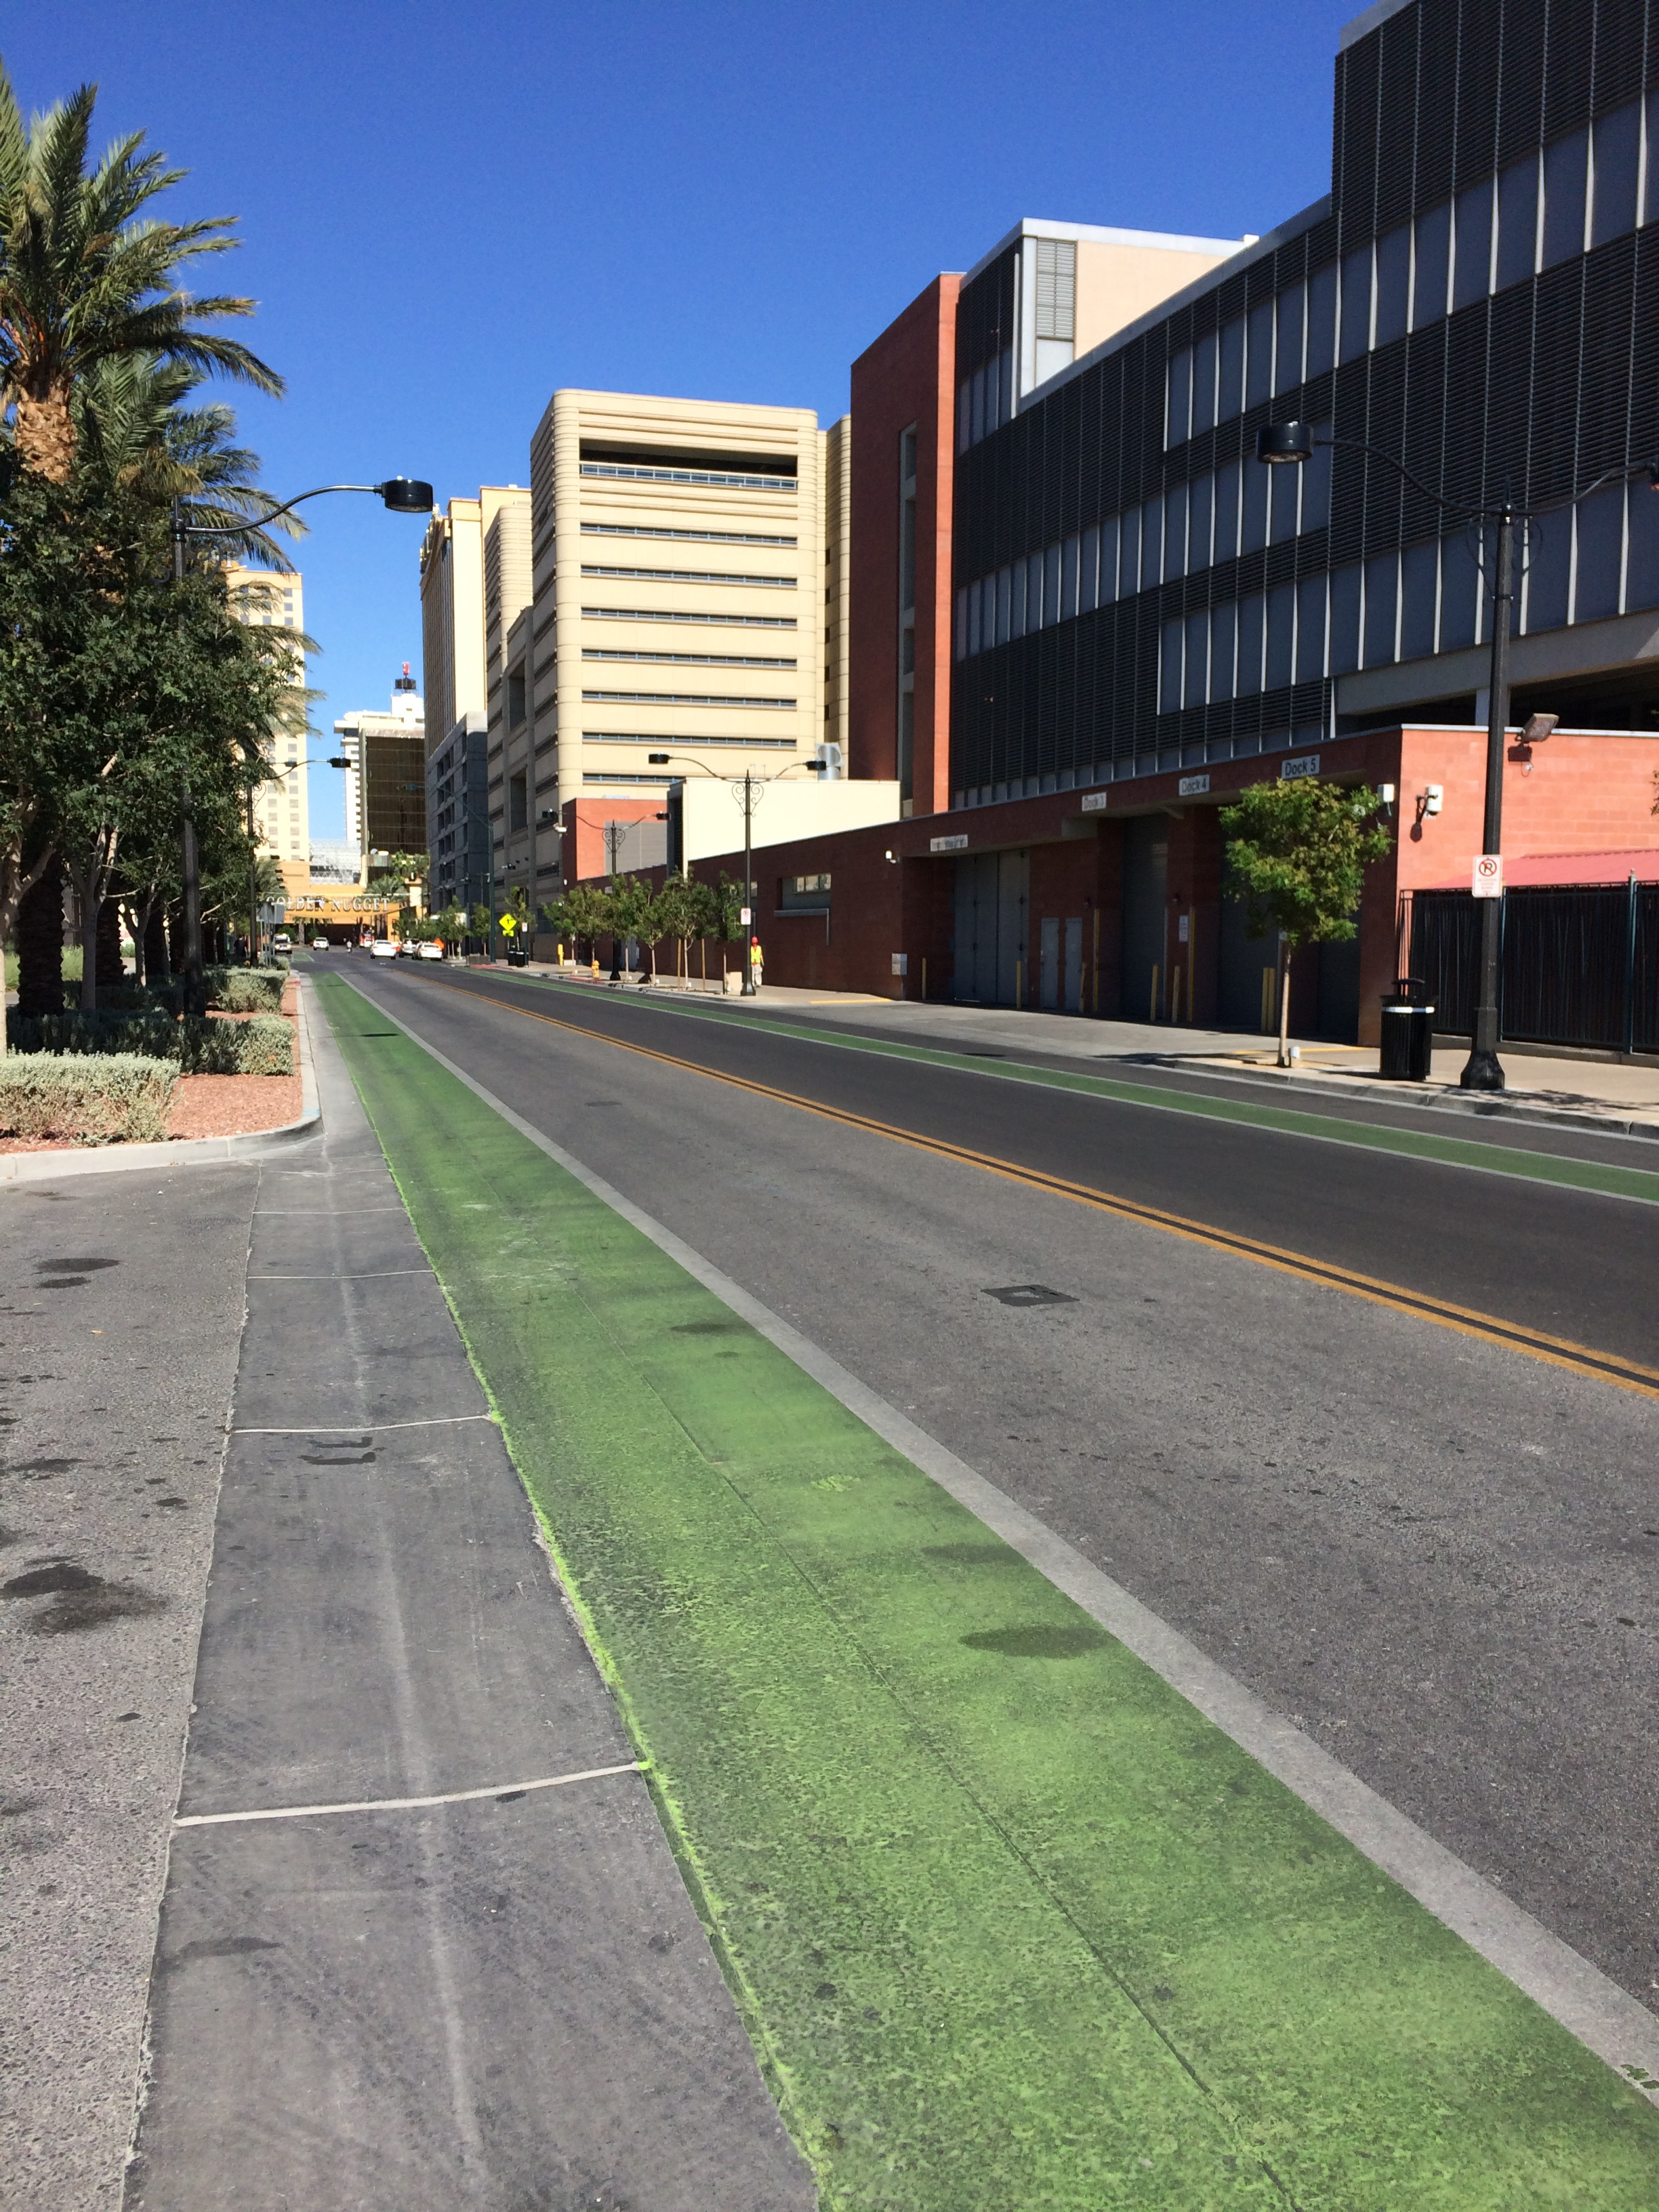 Bike lanes on both sides of the street.  Many North American cities have streets wide enough for bike lanes, unlike many older European towns and cities which can have narrow streets.